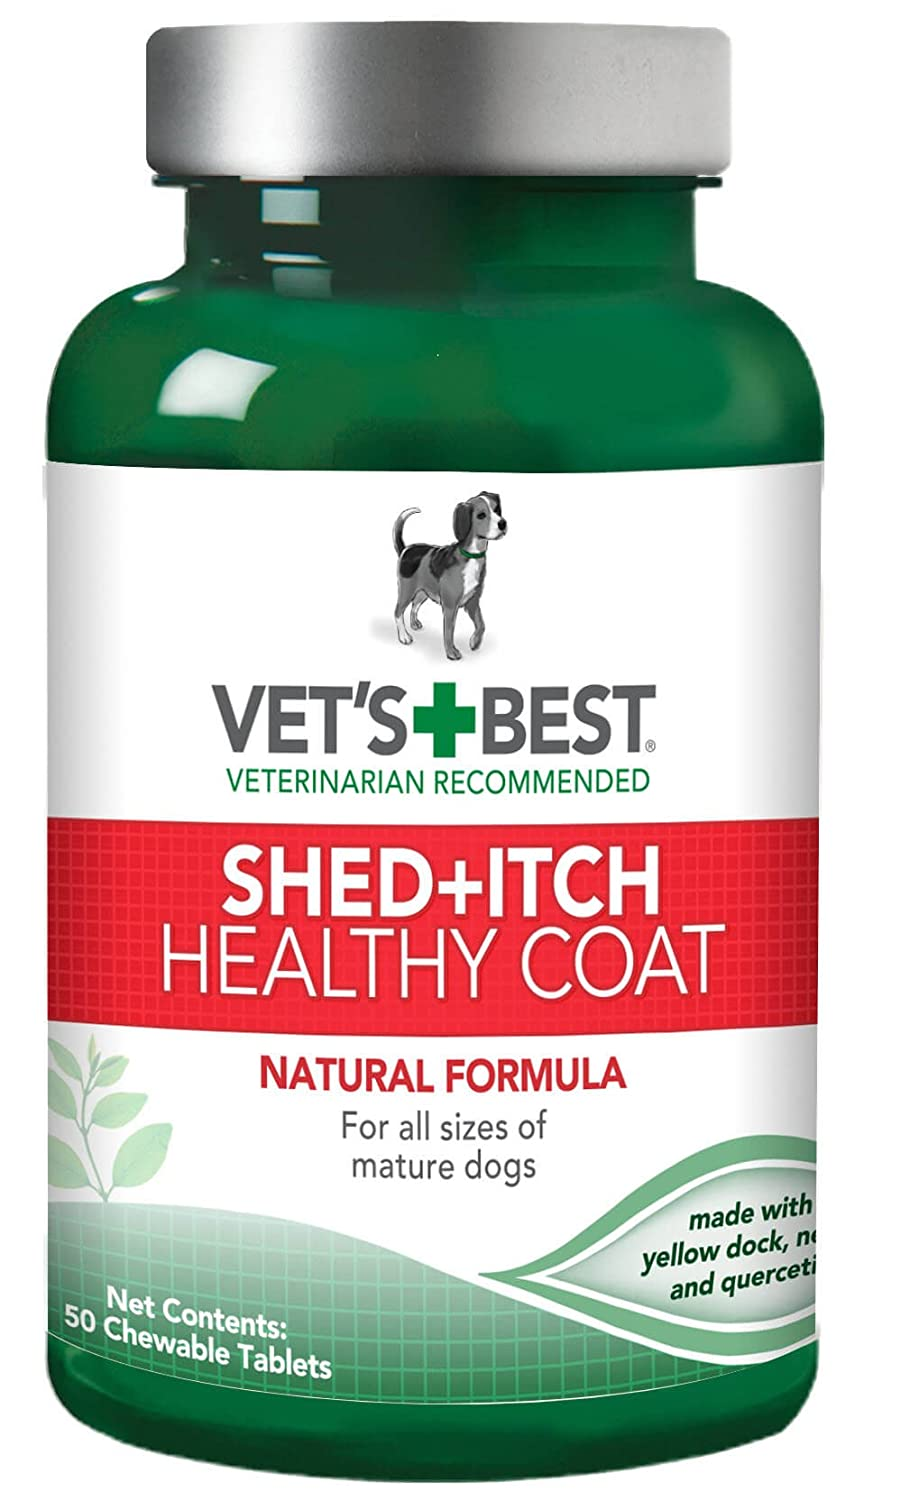 Vet's Best Healthy Coat Shed & Itch Relief Dog Supplements | Relieve Dogs Skin Irritation and Shedding Due to Seasonal Allergies or Dermatitis